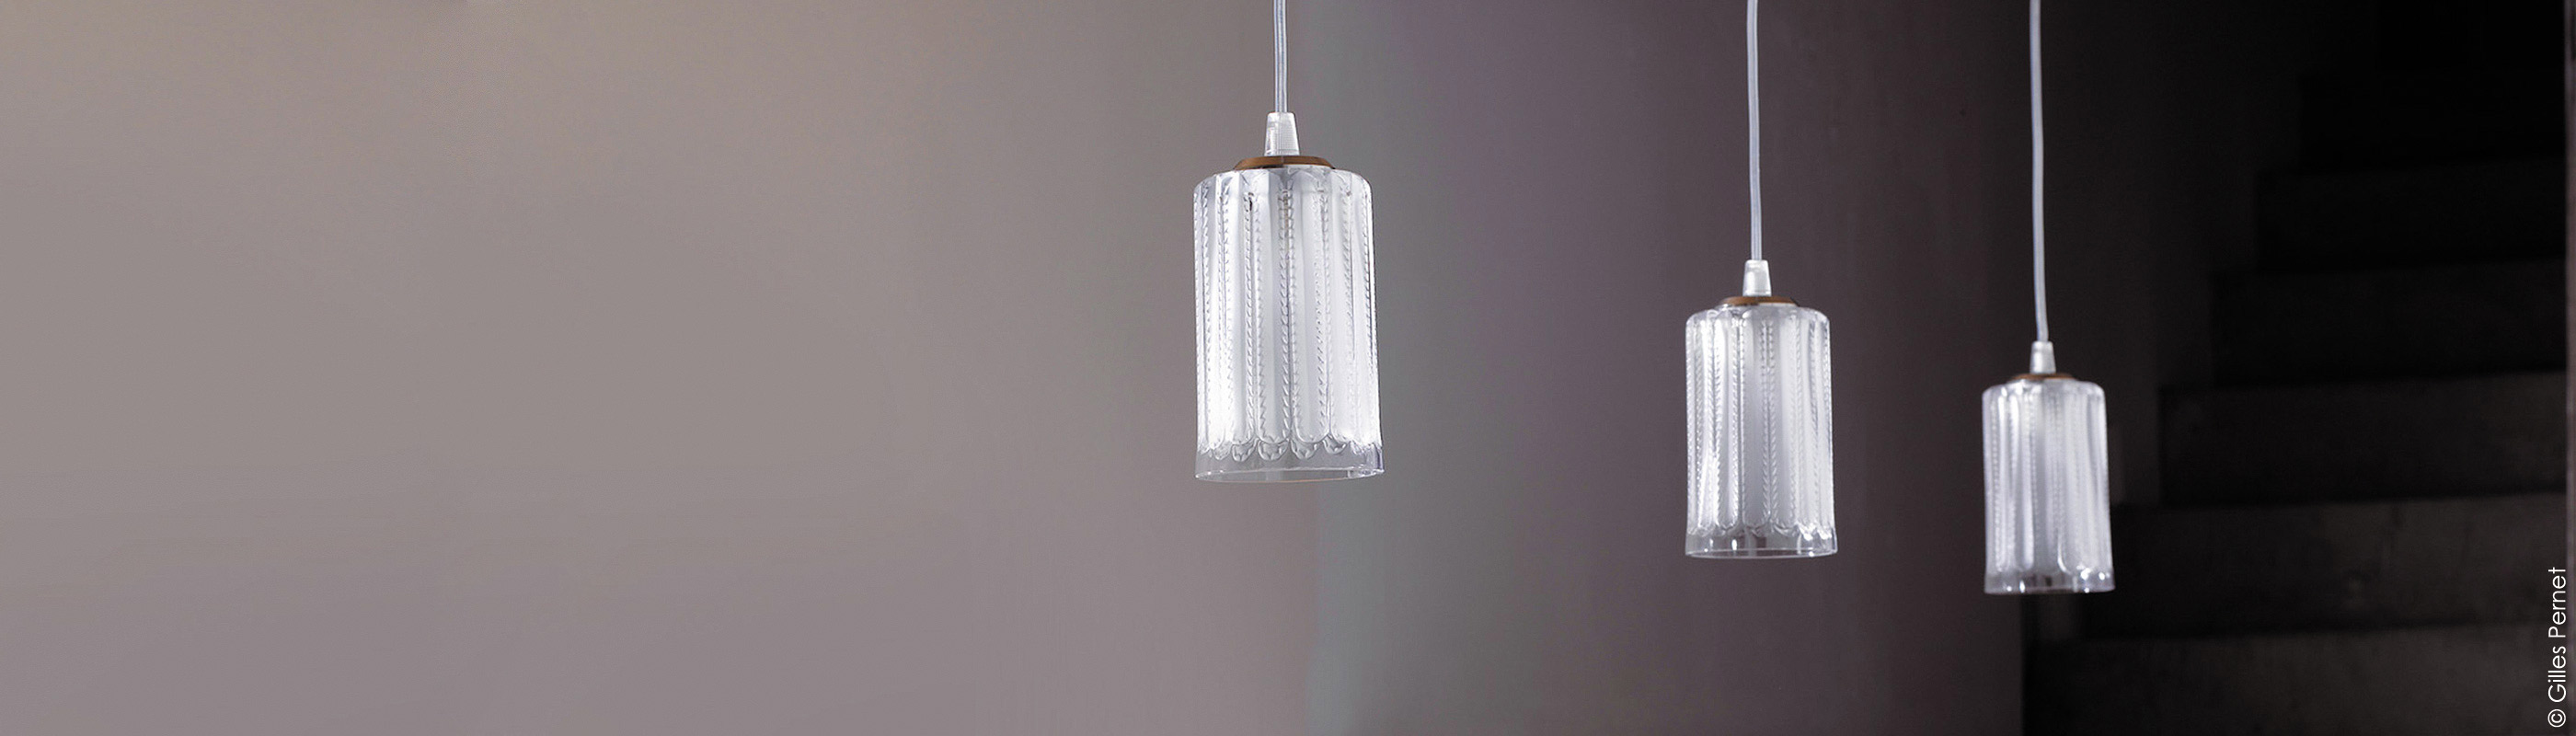 Ceiling Lamps Lights 6 Items